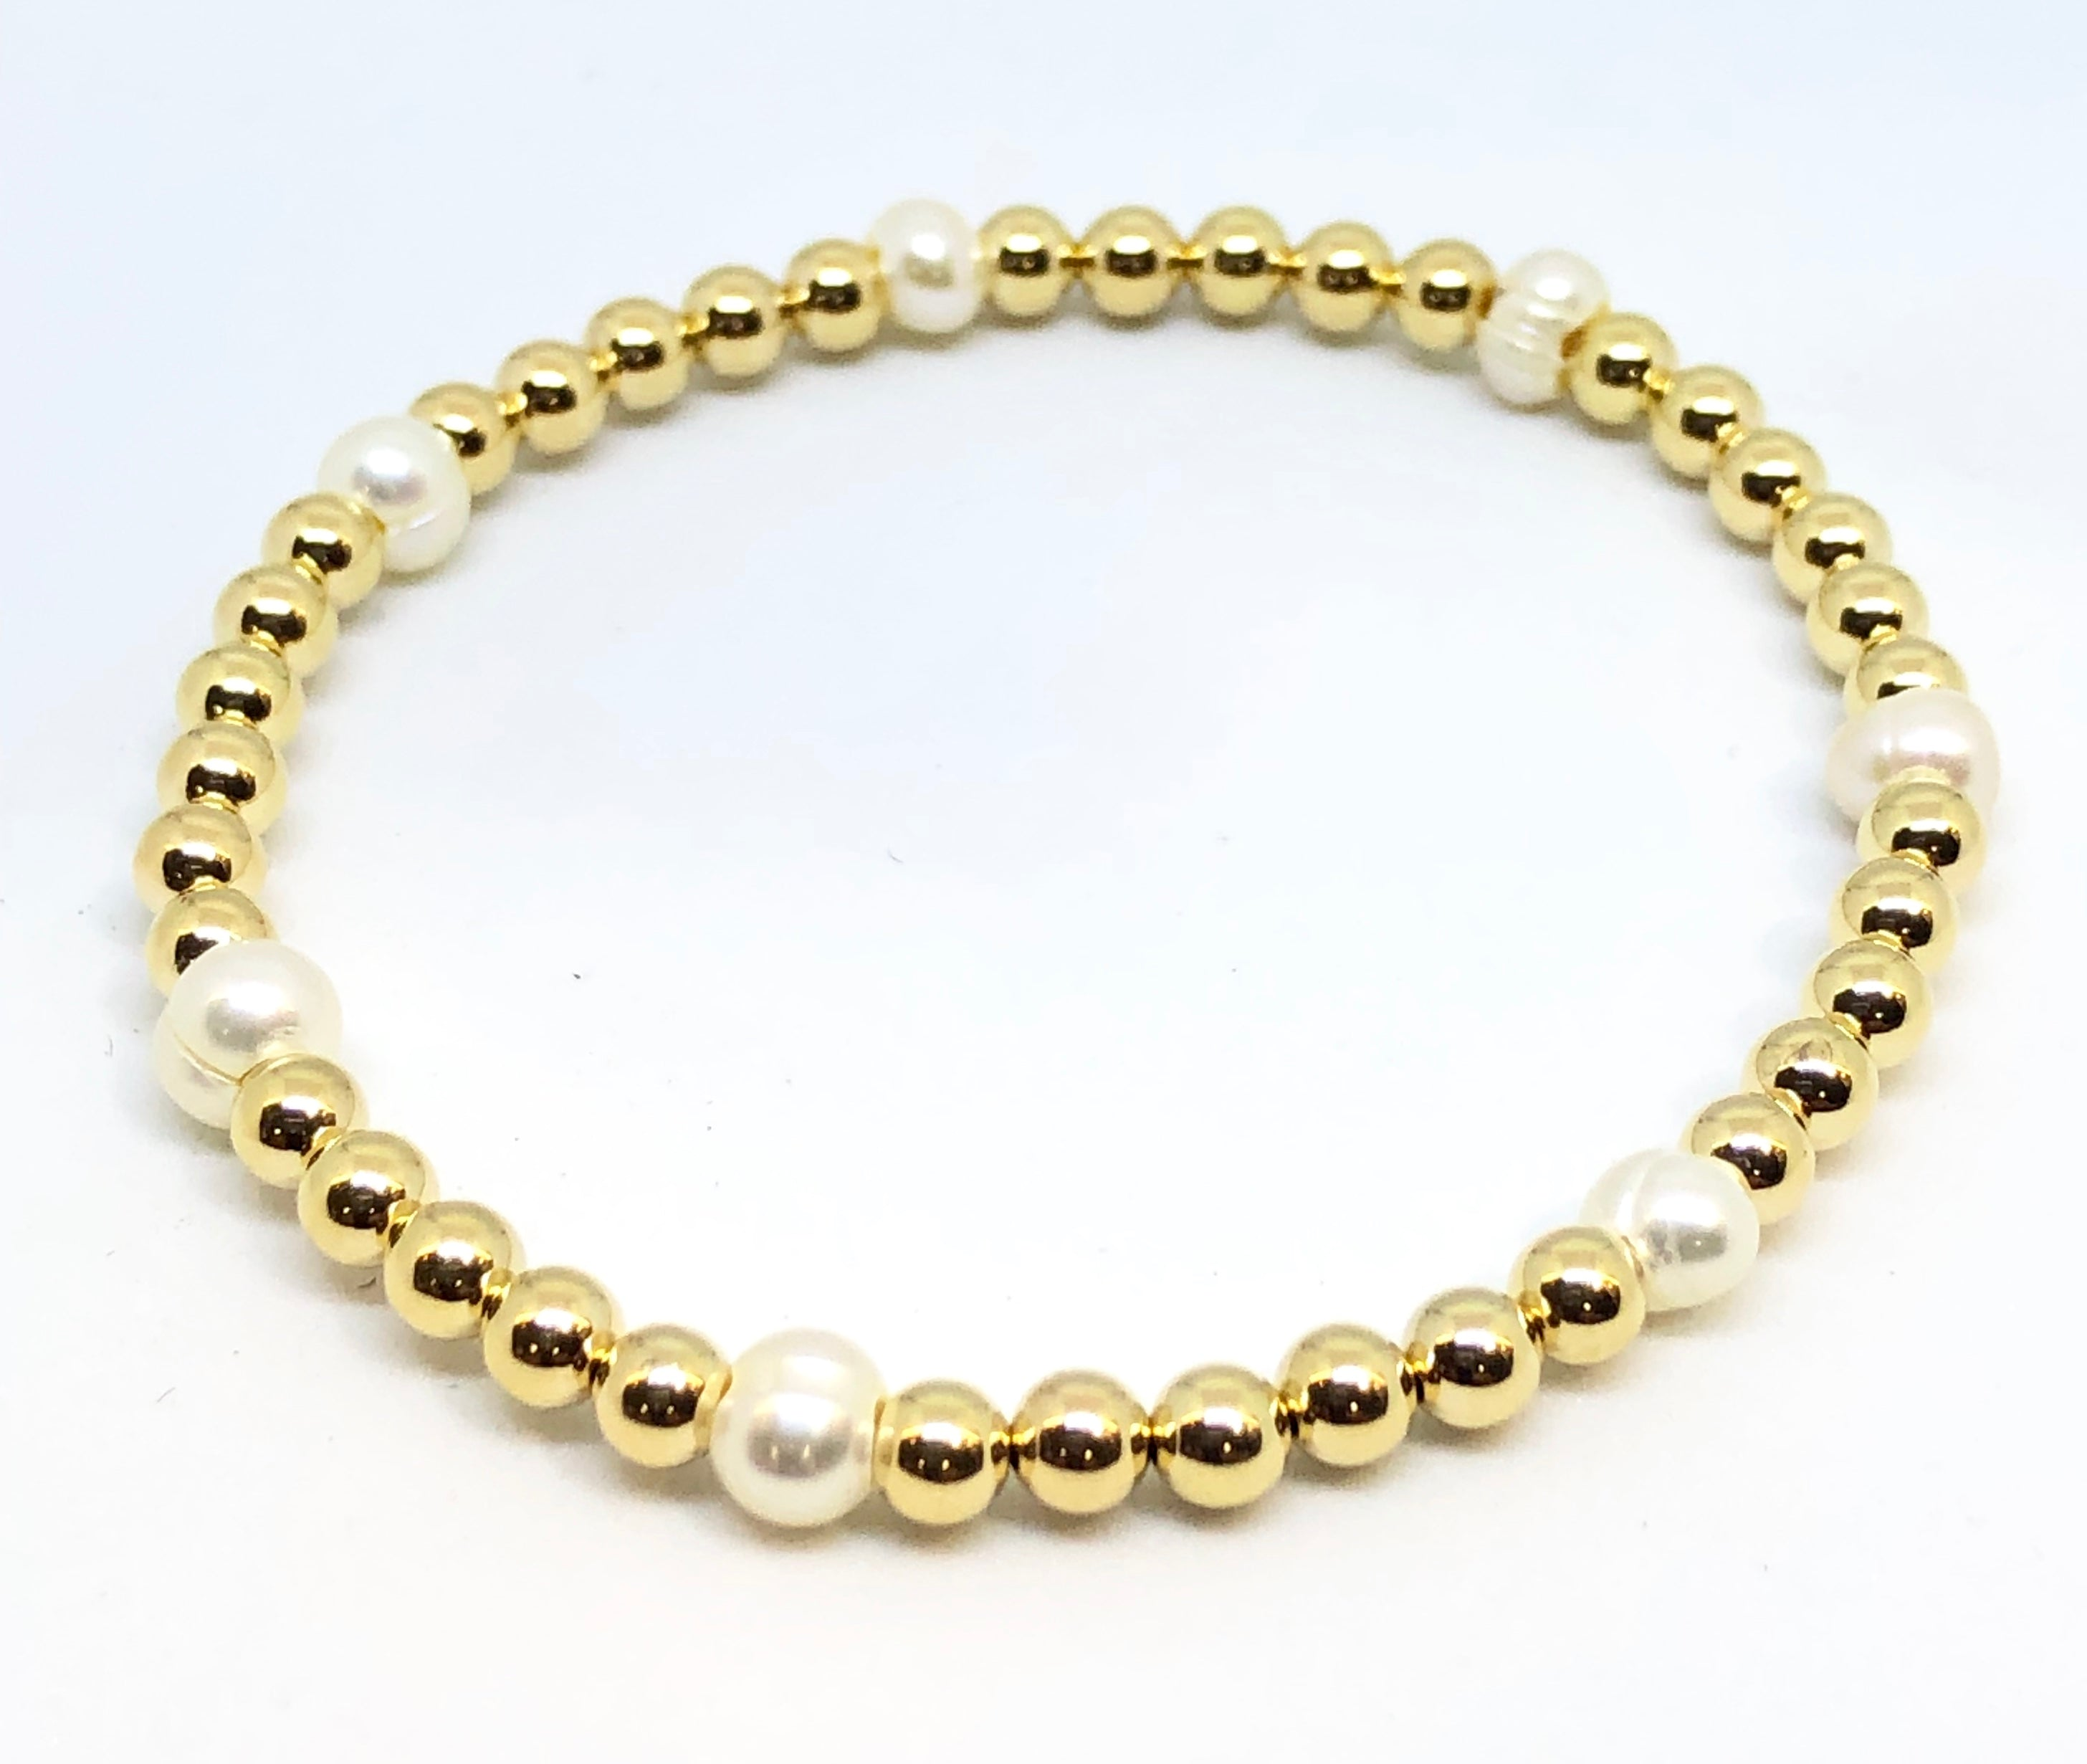 4mm 14kt Gold Filled Bead Bracelet with 7 4mm Fresh Water Pearls